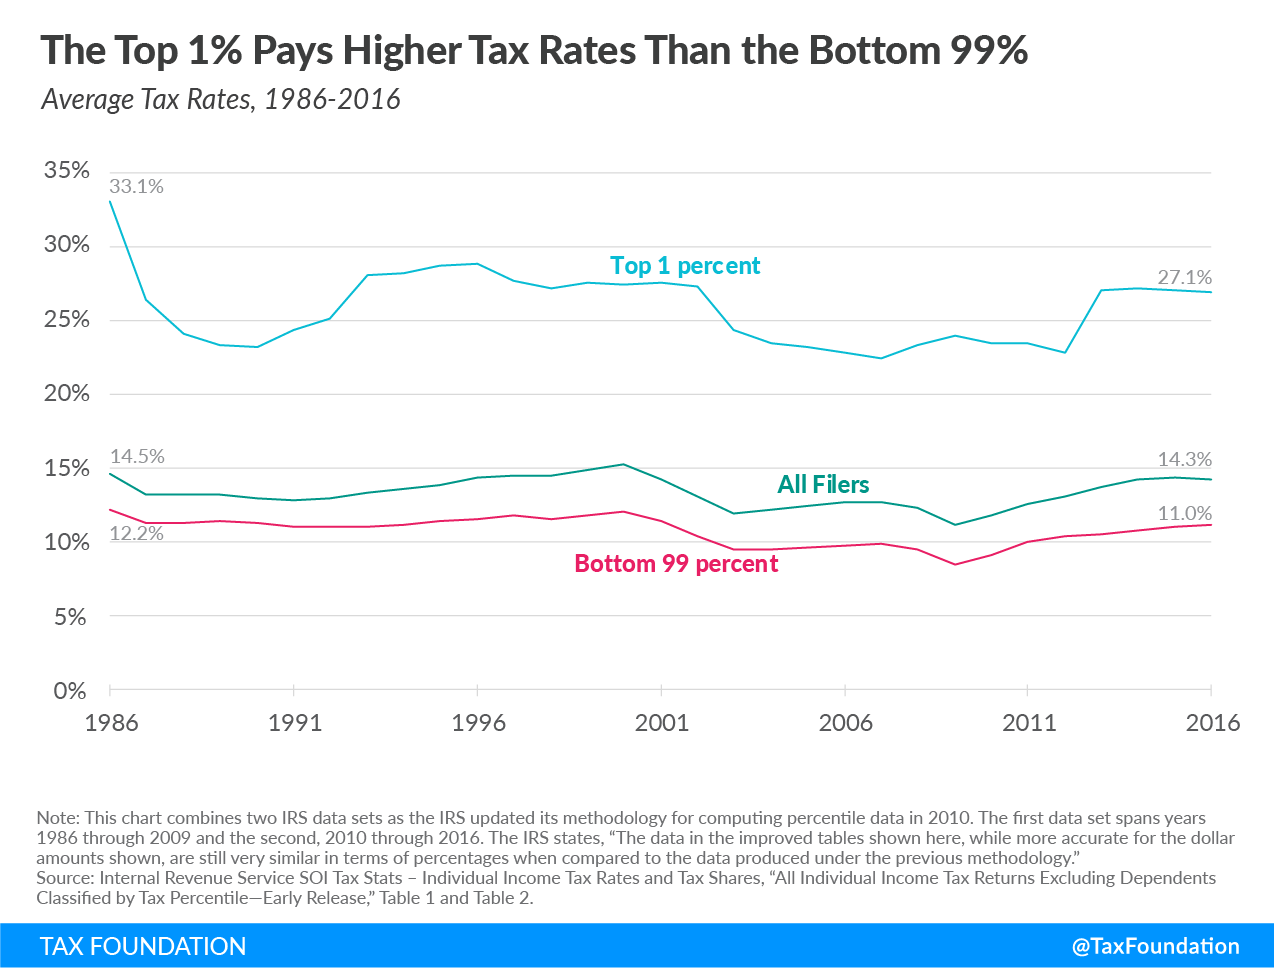 The top 1% pays higher tax rates than the bottom 99%, income inequality, income tax